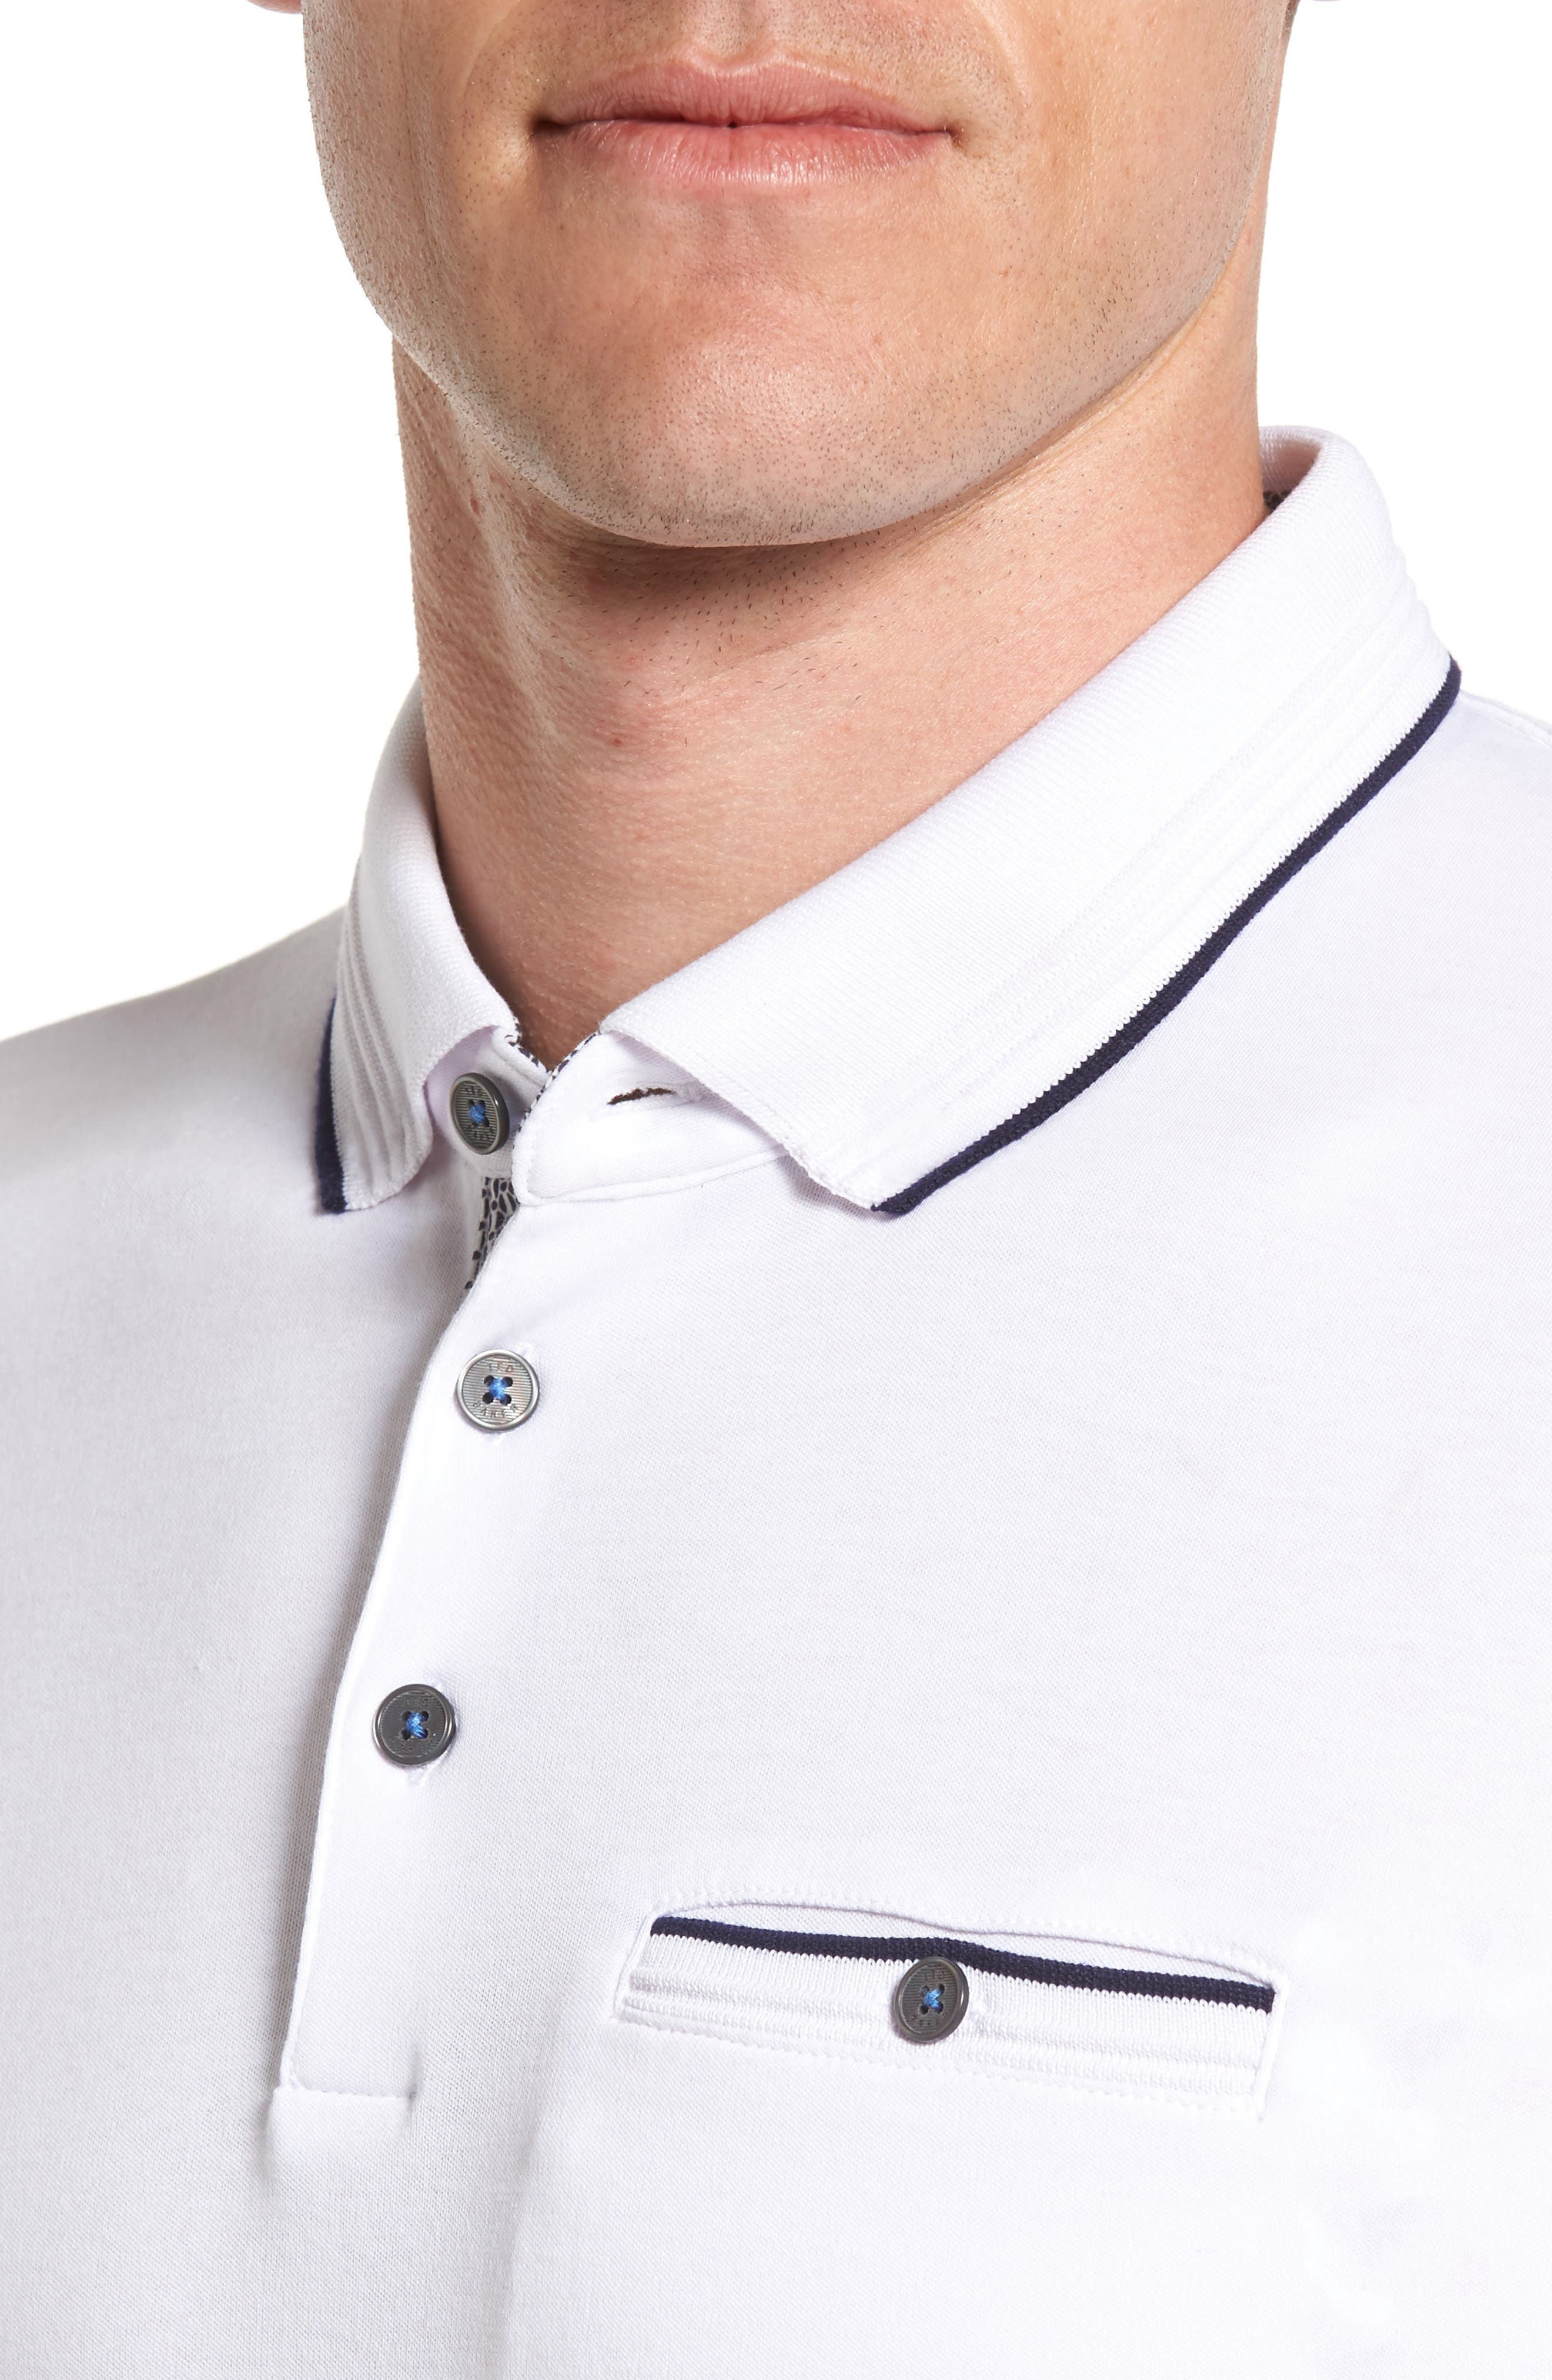 TED BAKER LONDON, Derry Modern Slim Fit Polo, Alternate thumbnail 4, color, WHITE